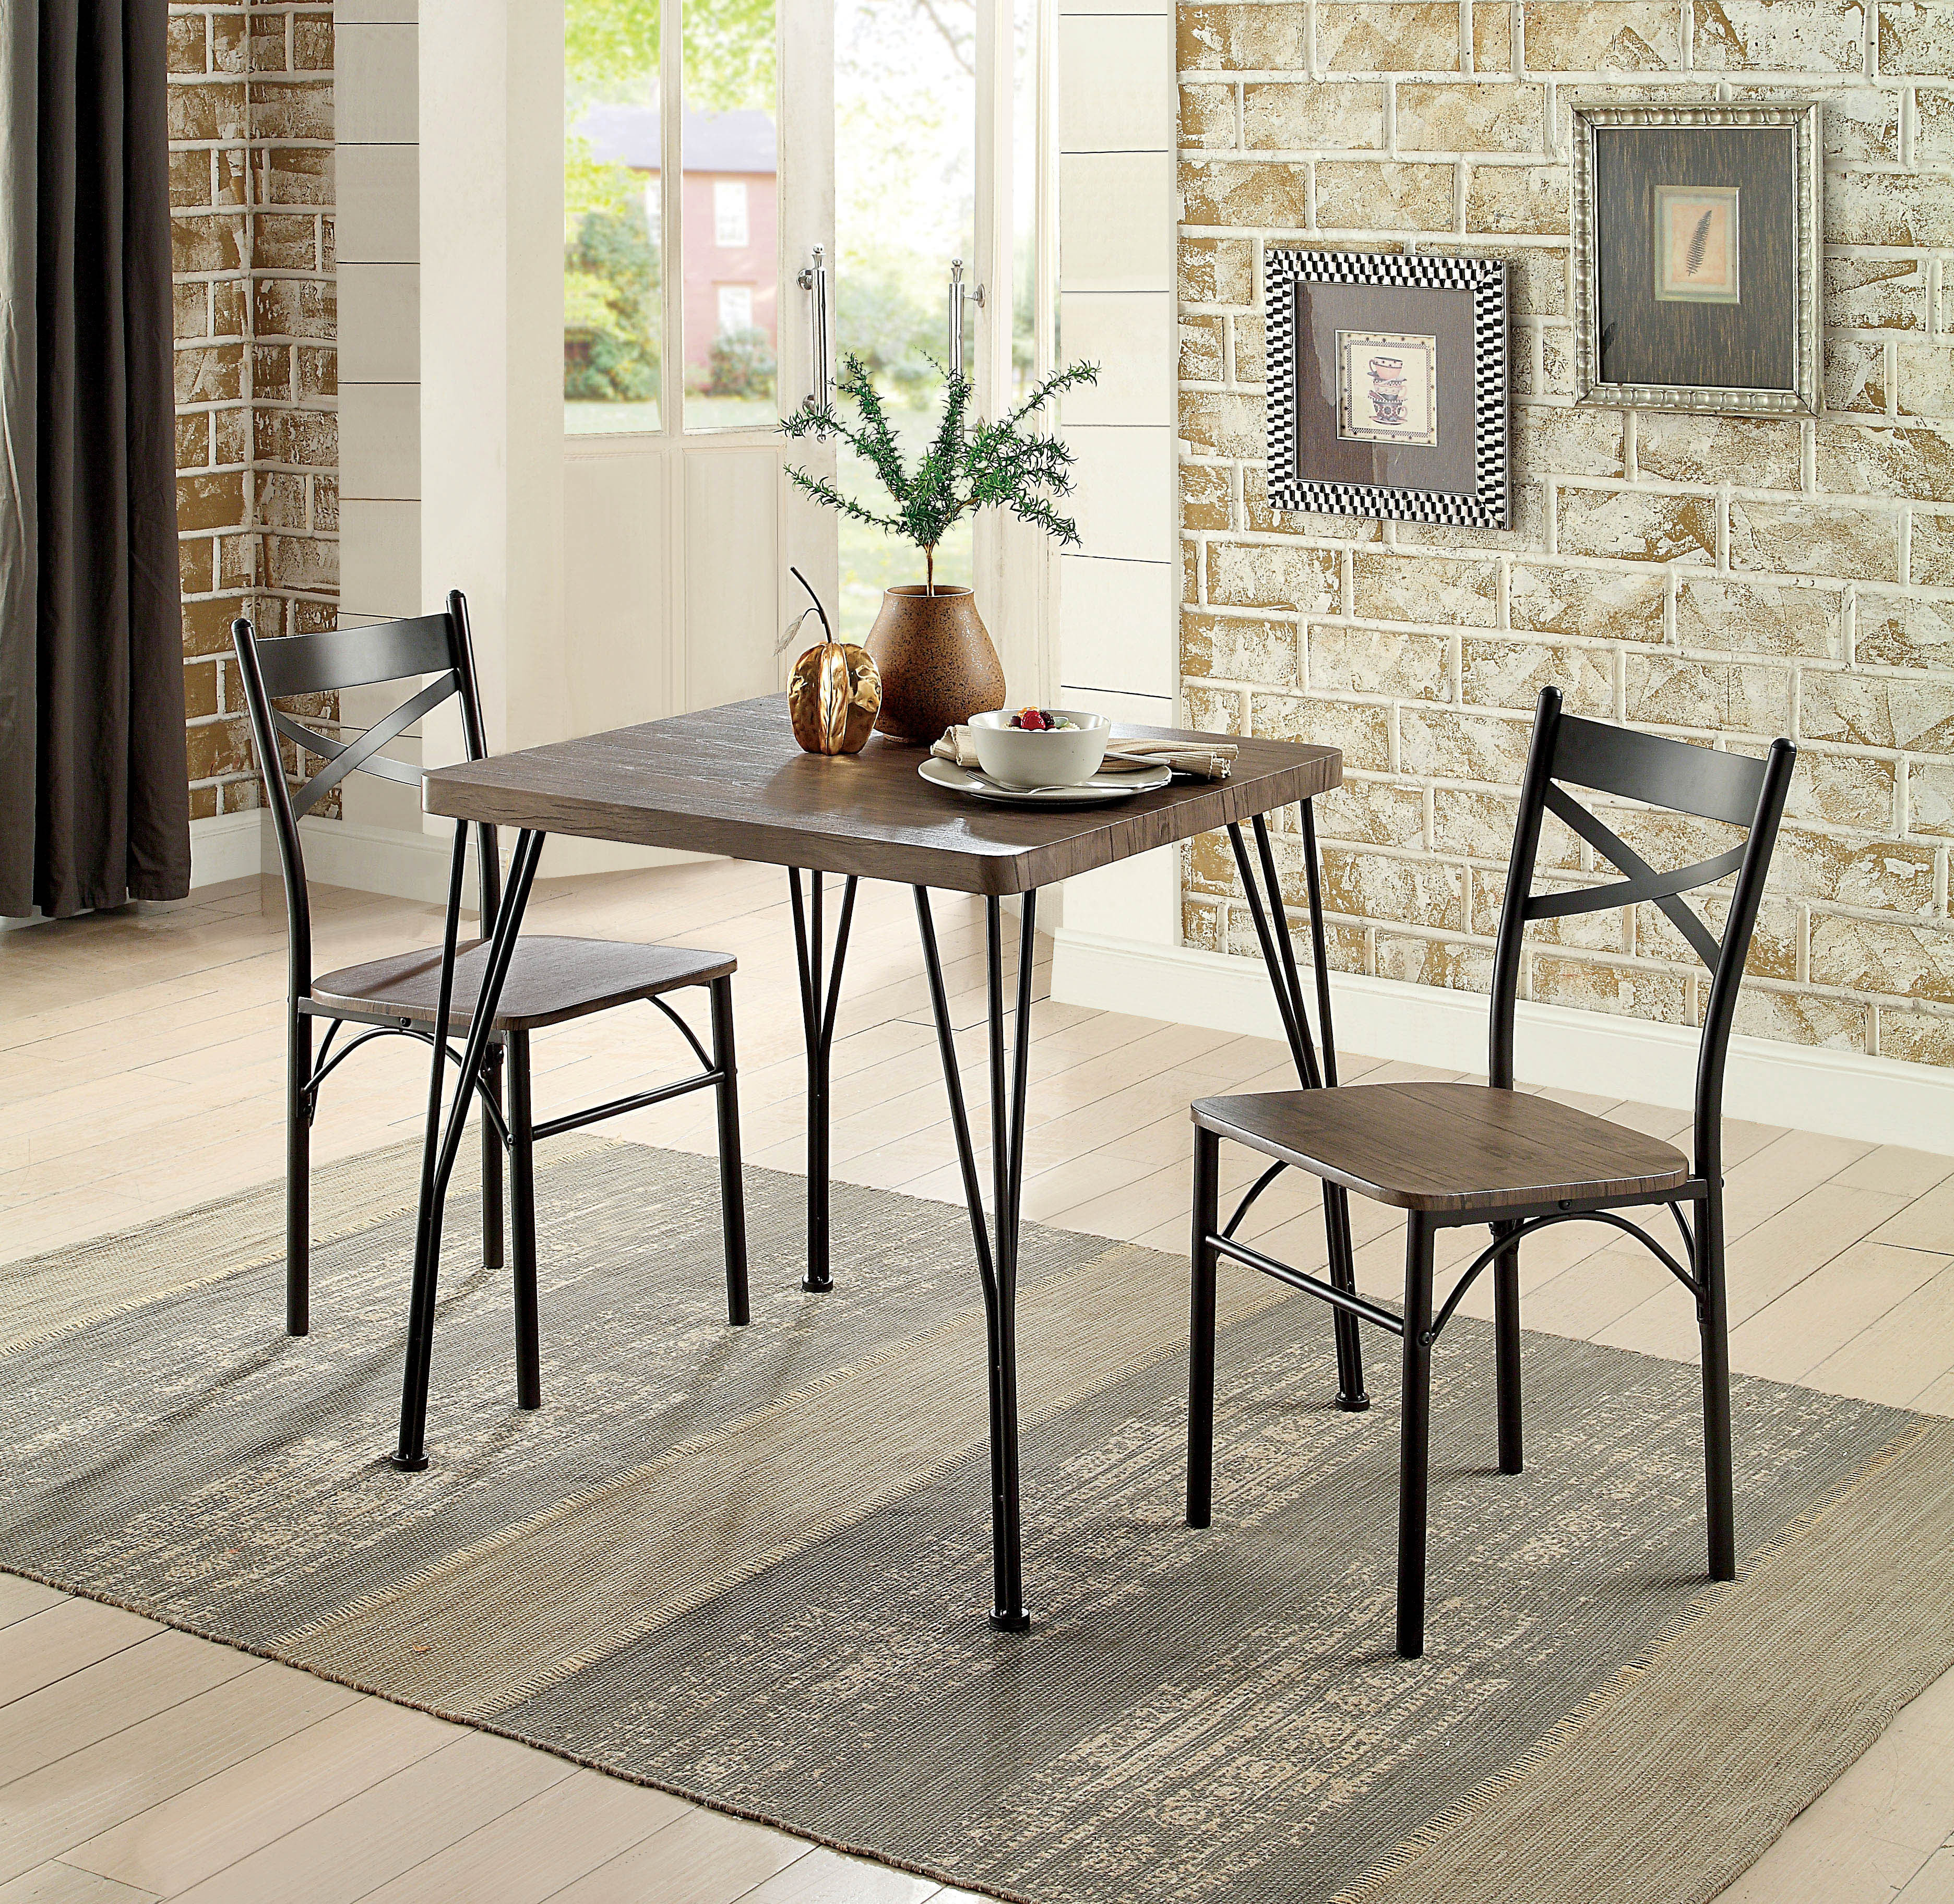 Laurel Foundry Modern Farmhouse Guertin 3 Piece Dining Set & Reviews With Most Up To Date Mulvey 5 Piece Dining Sets (View 15 of 20)